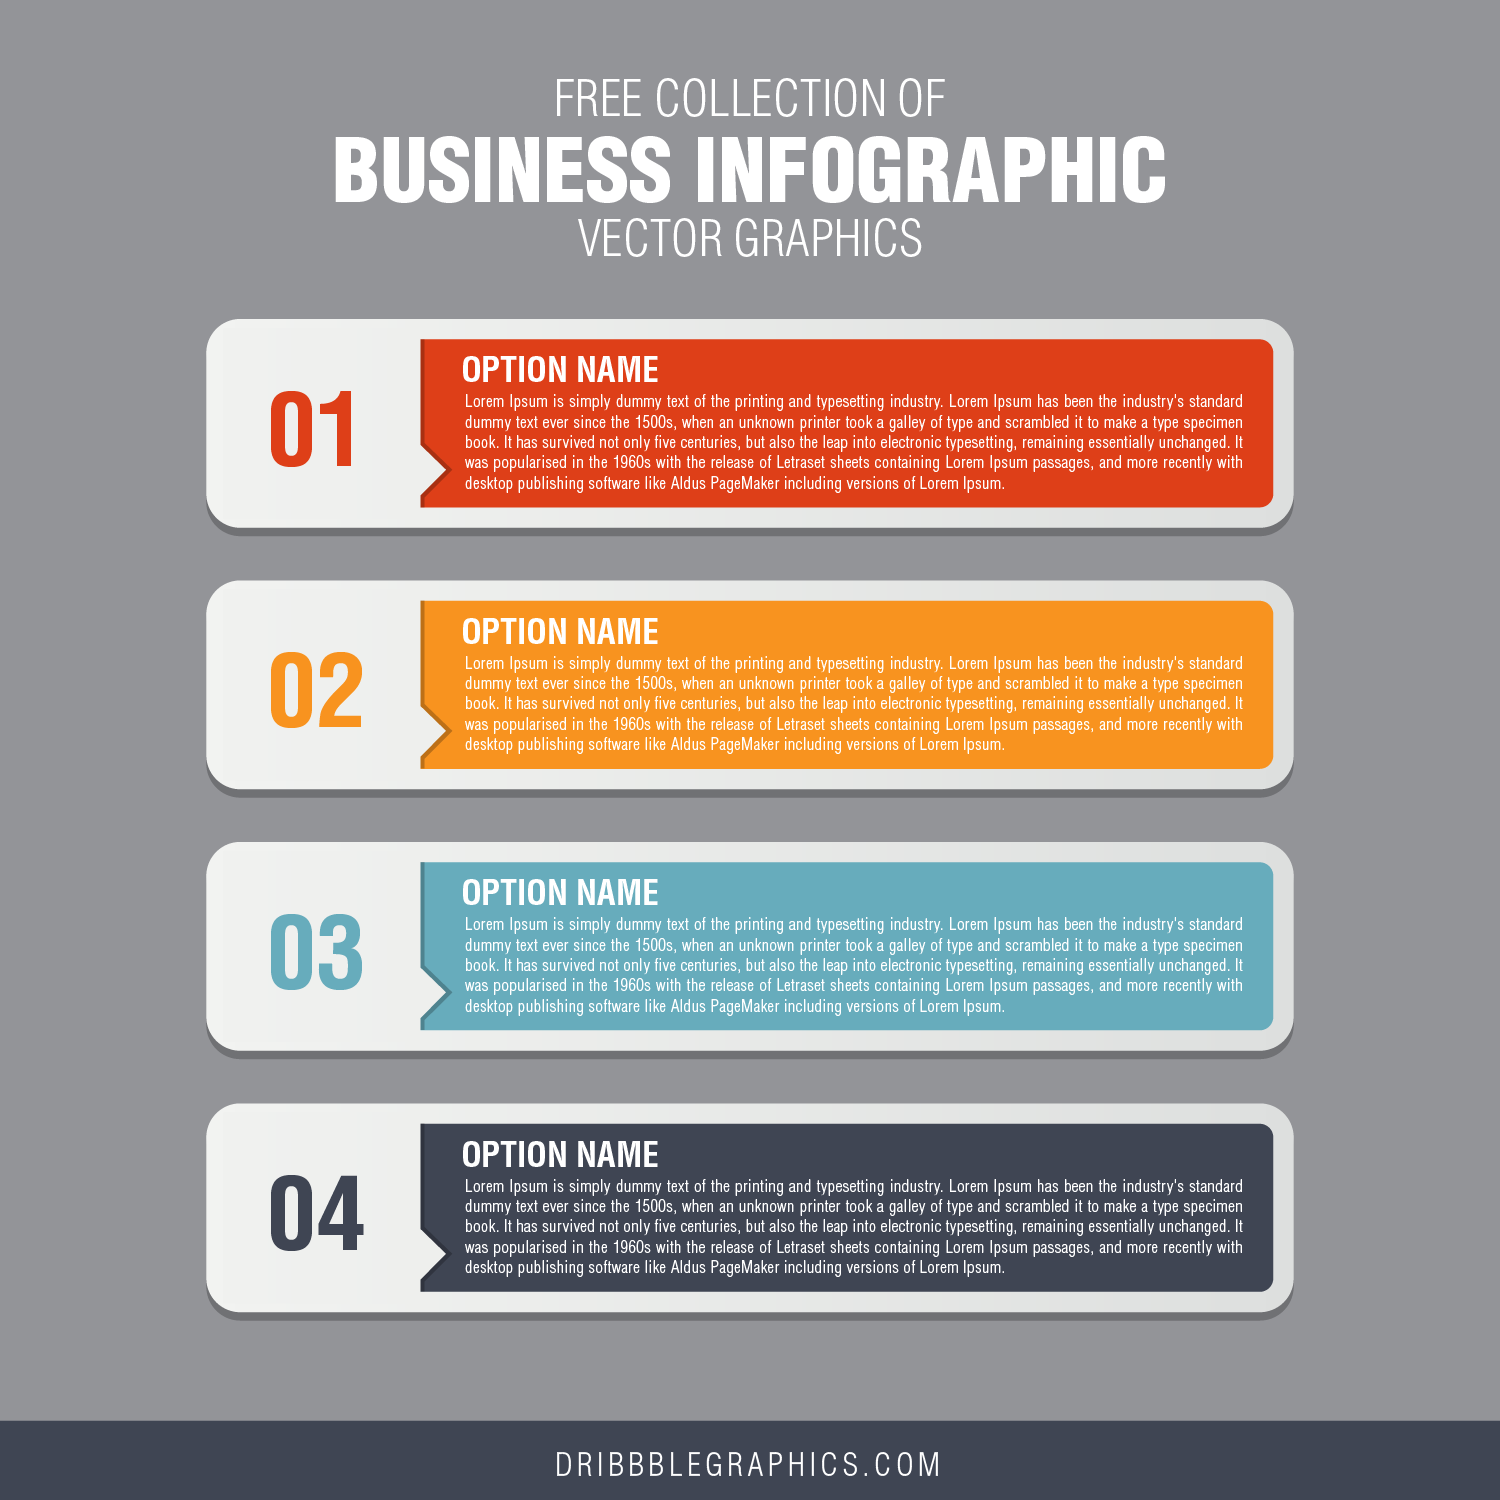 Free Collection of Business Infographic Vector Graphics-04